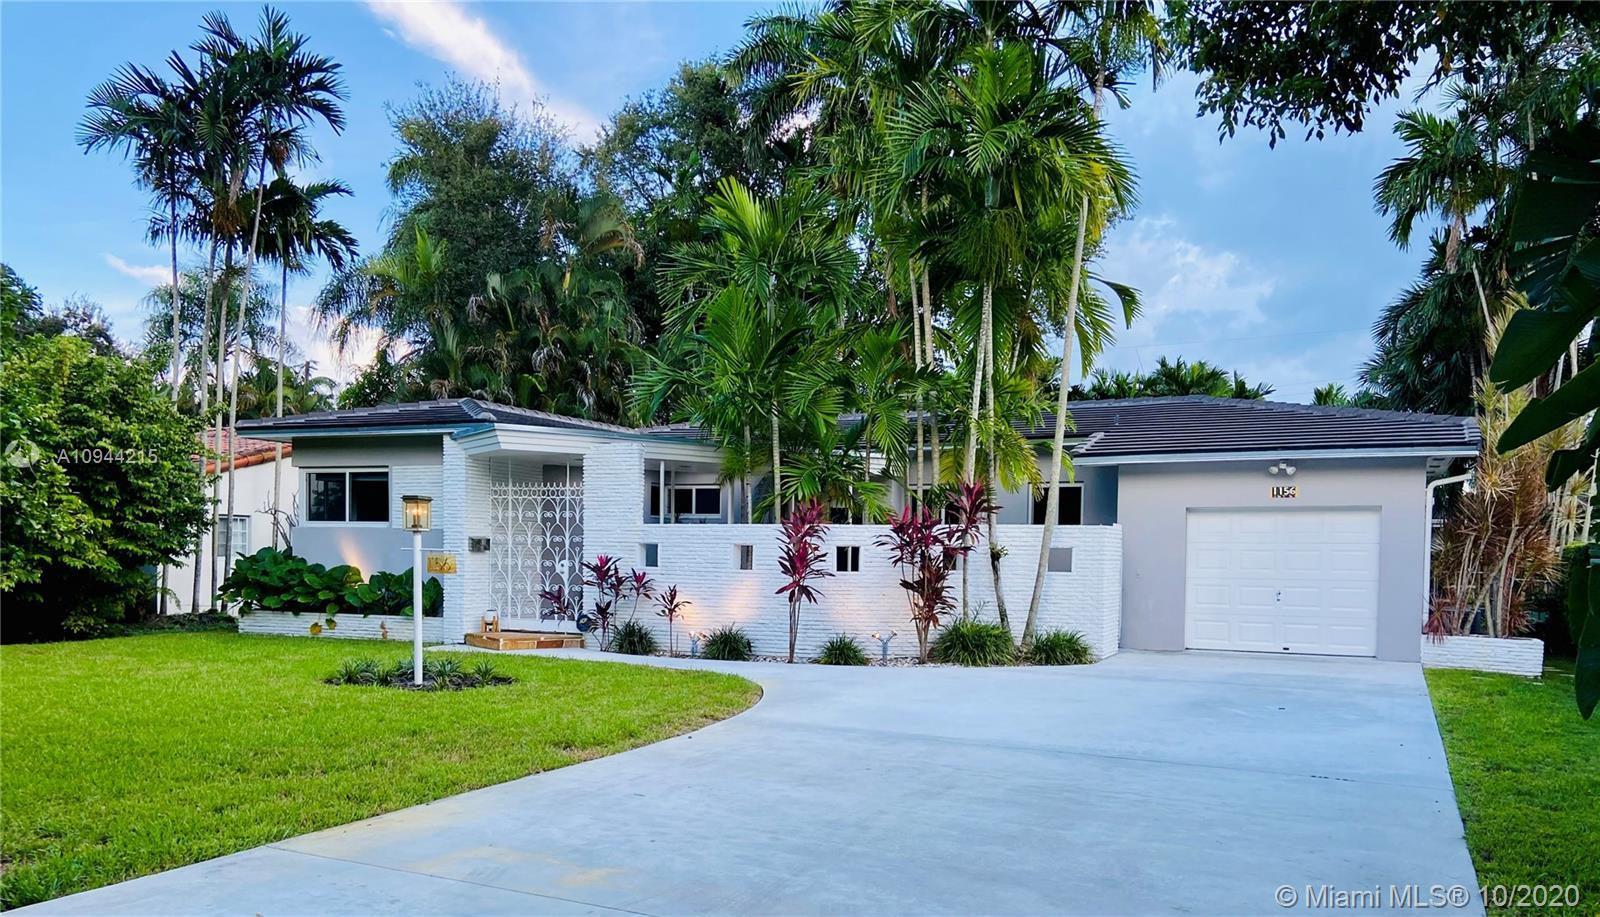 Don't miss this Mid Century Modern home with tons of style that's priced to sell! Cool courtyard wel